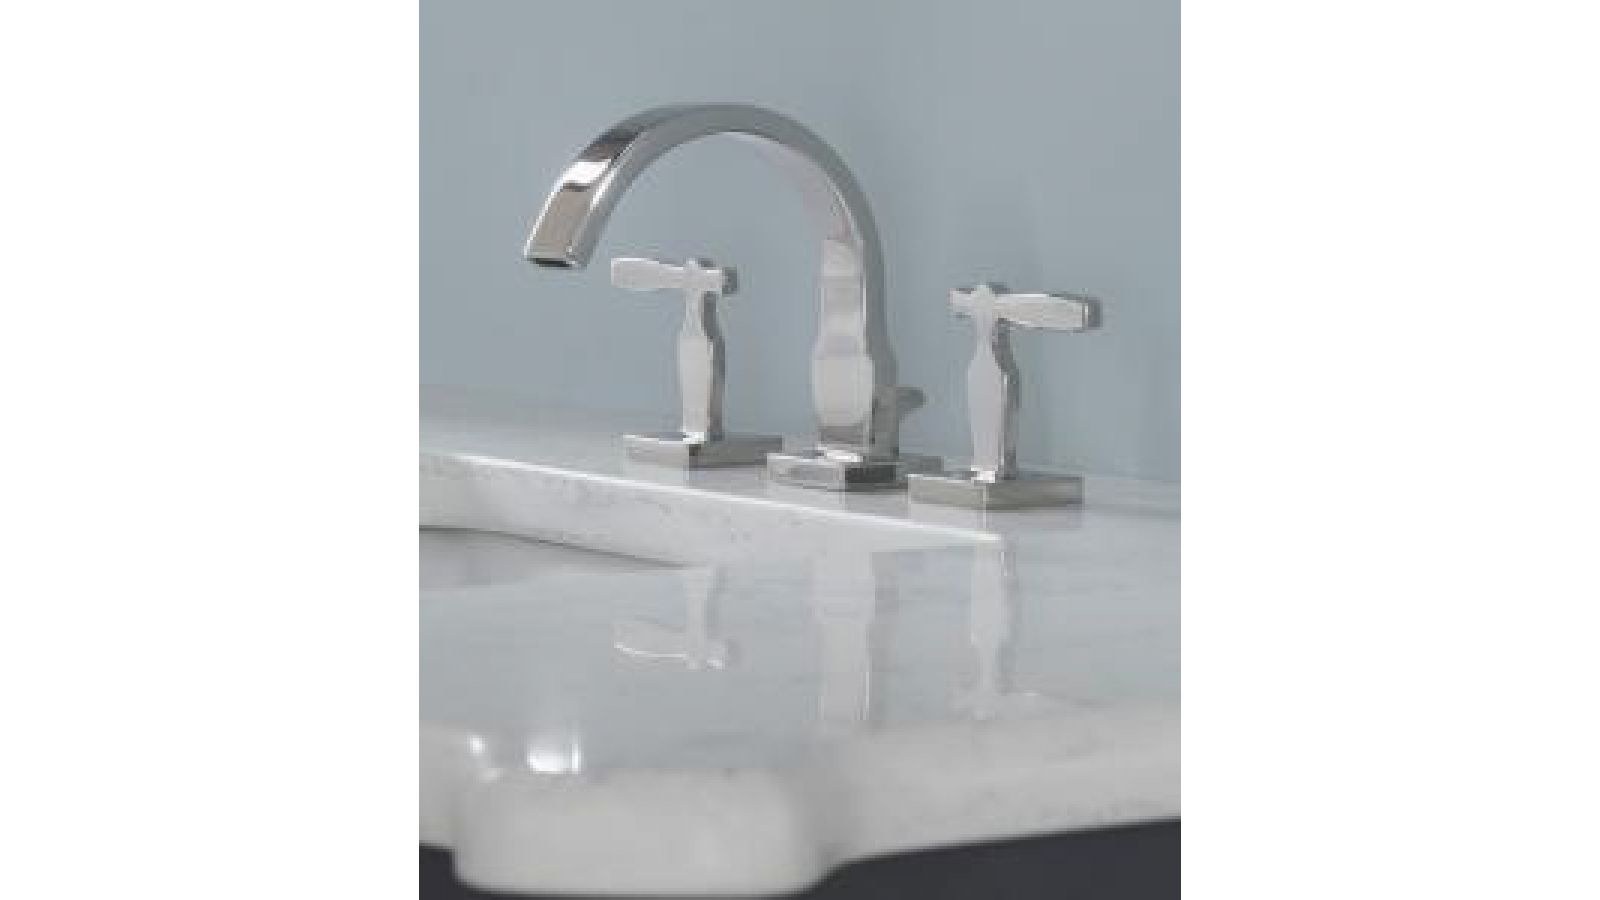 Aimes High-Efficiency Lavatory Faucet